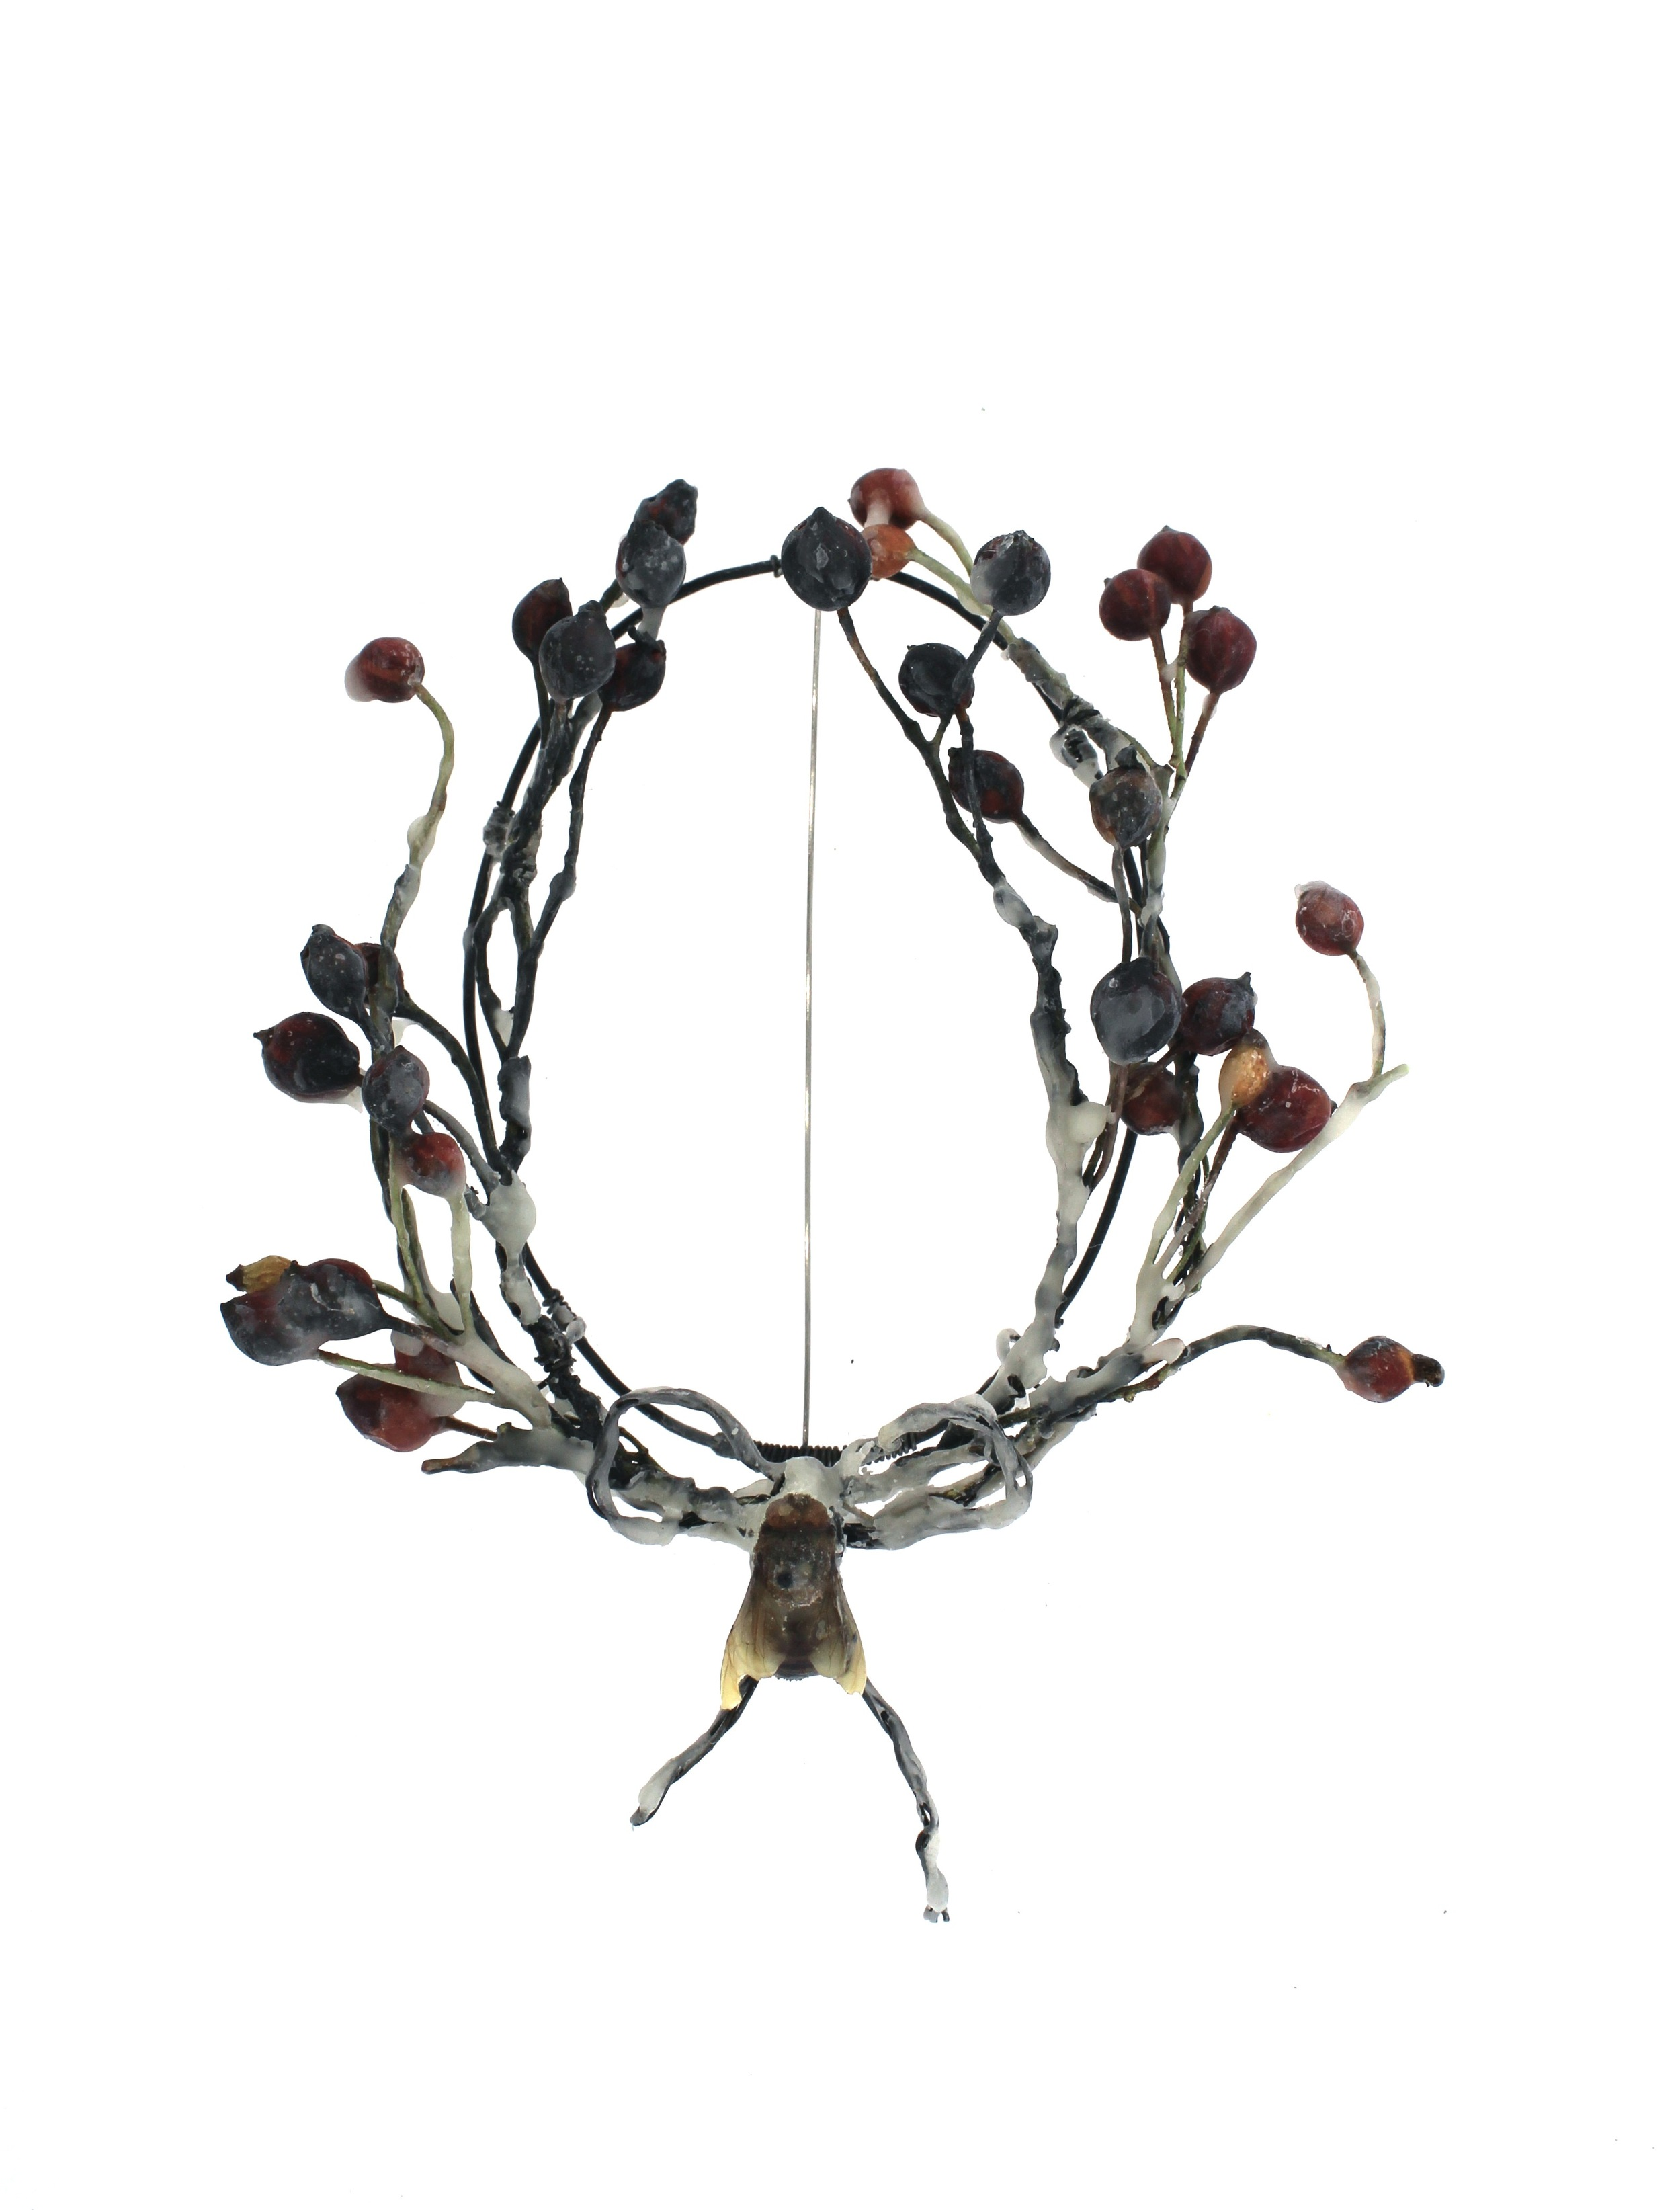 Bee Mourning III  rose hip, steel, beeswax, honey bee, insect pin